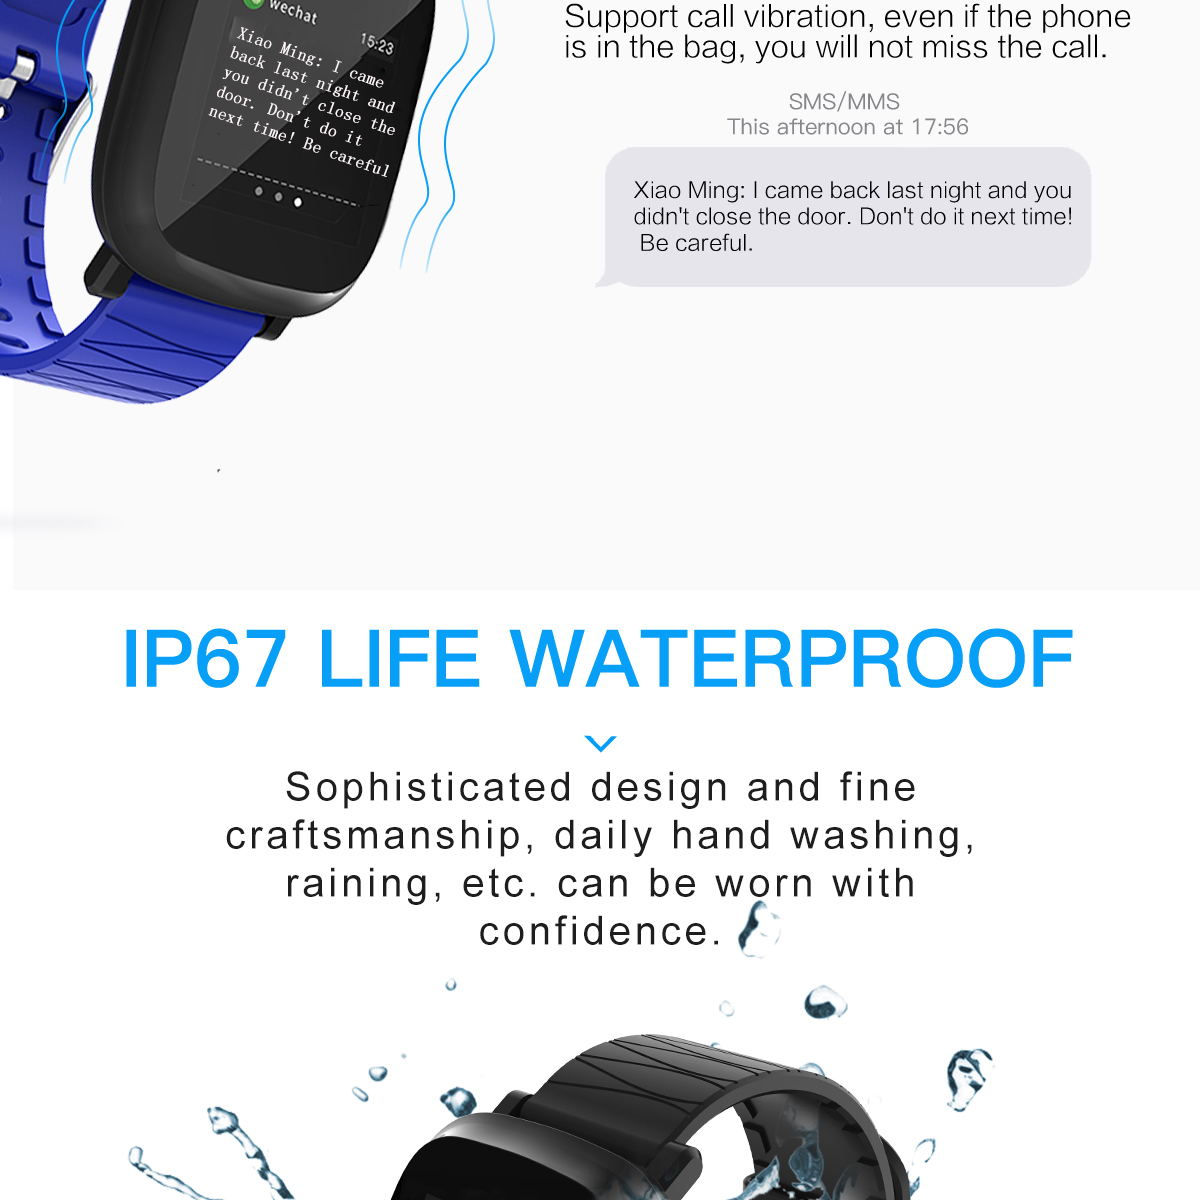 Bakeey M30 1.3' Sleep HR Blood Oxygen Pressure Monitor IP67 Waterproof Message Alarm Smart Watch